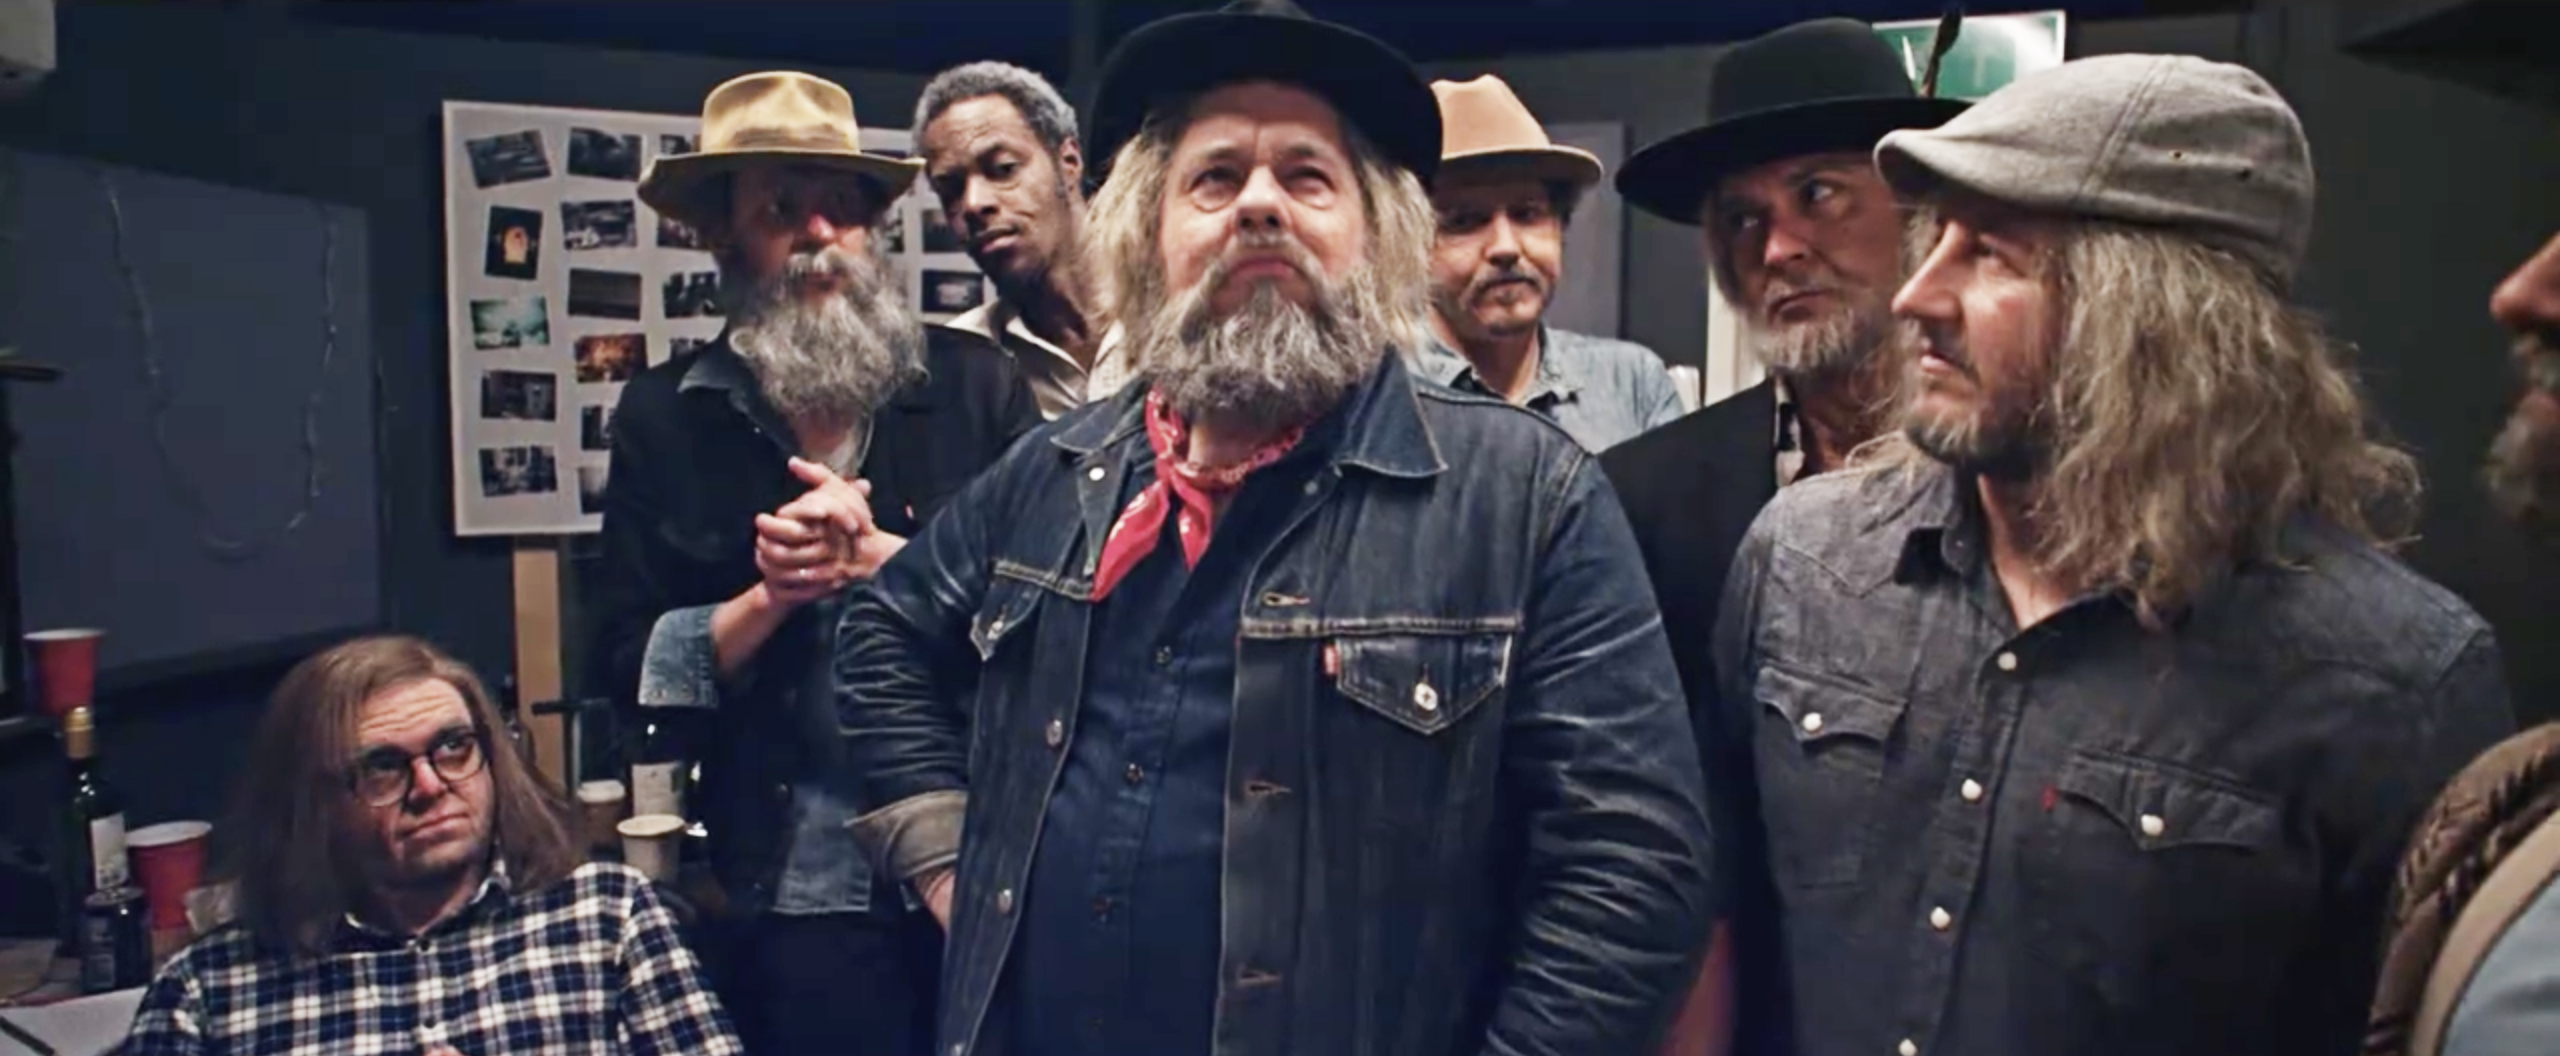 Watch Nathaniel Rateliff's Hilarious 'I Need Never Get Old' Video